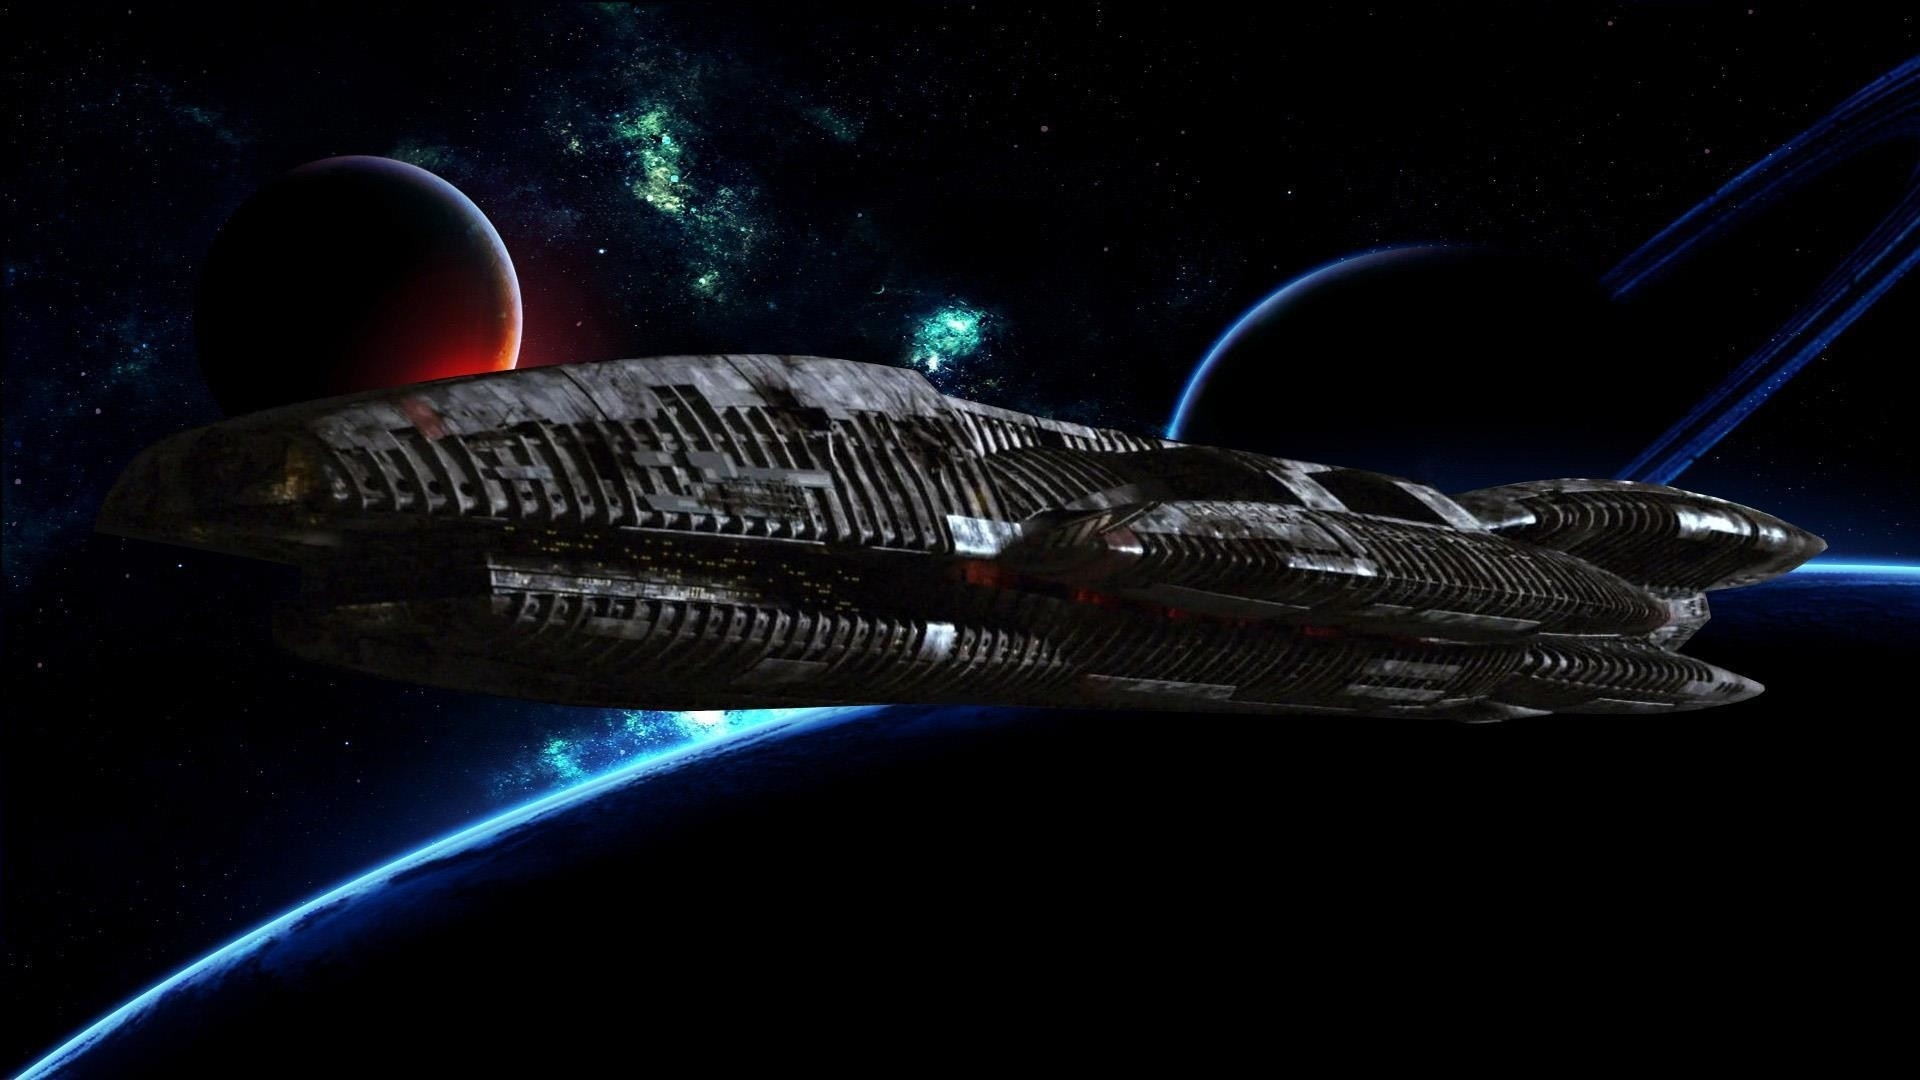 battlestar galactica wallpaper 1920x1080 (73+ images)